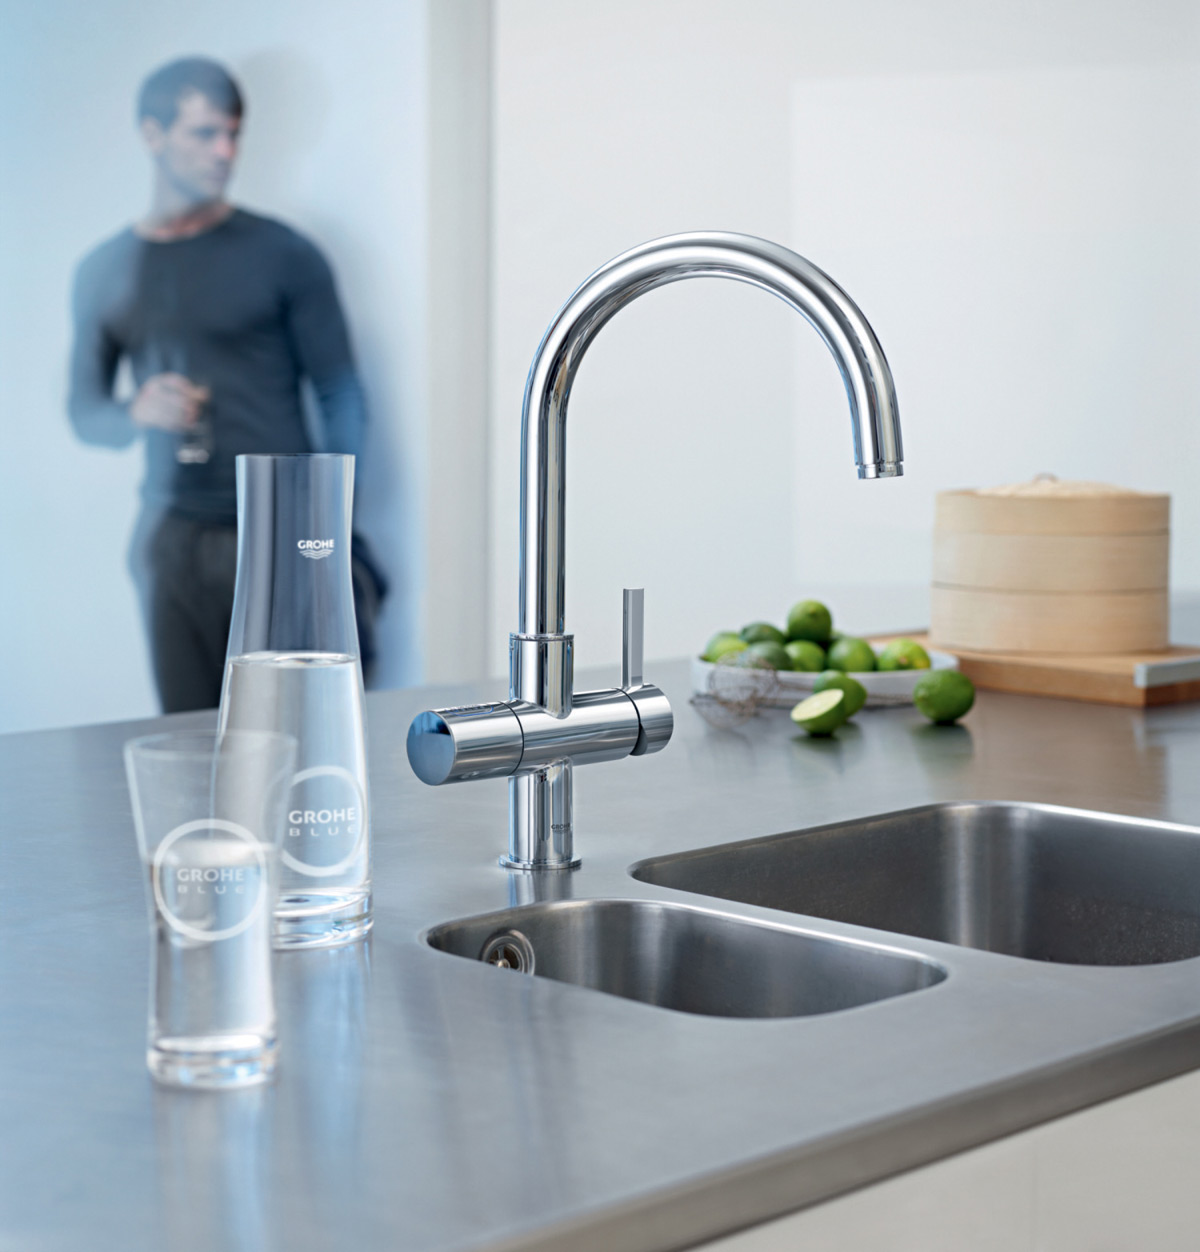 ways to conserve water in the kitchen blanco meridian semi professional faucet chilled and sparkling from tap extravaganzi